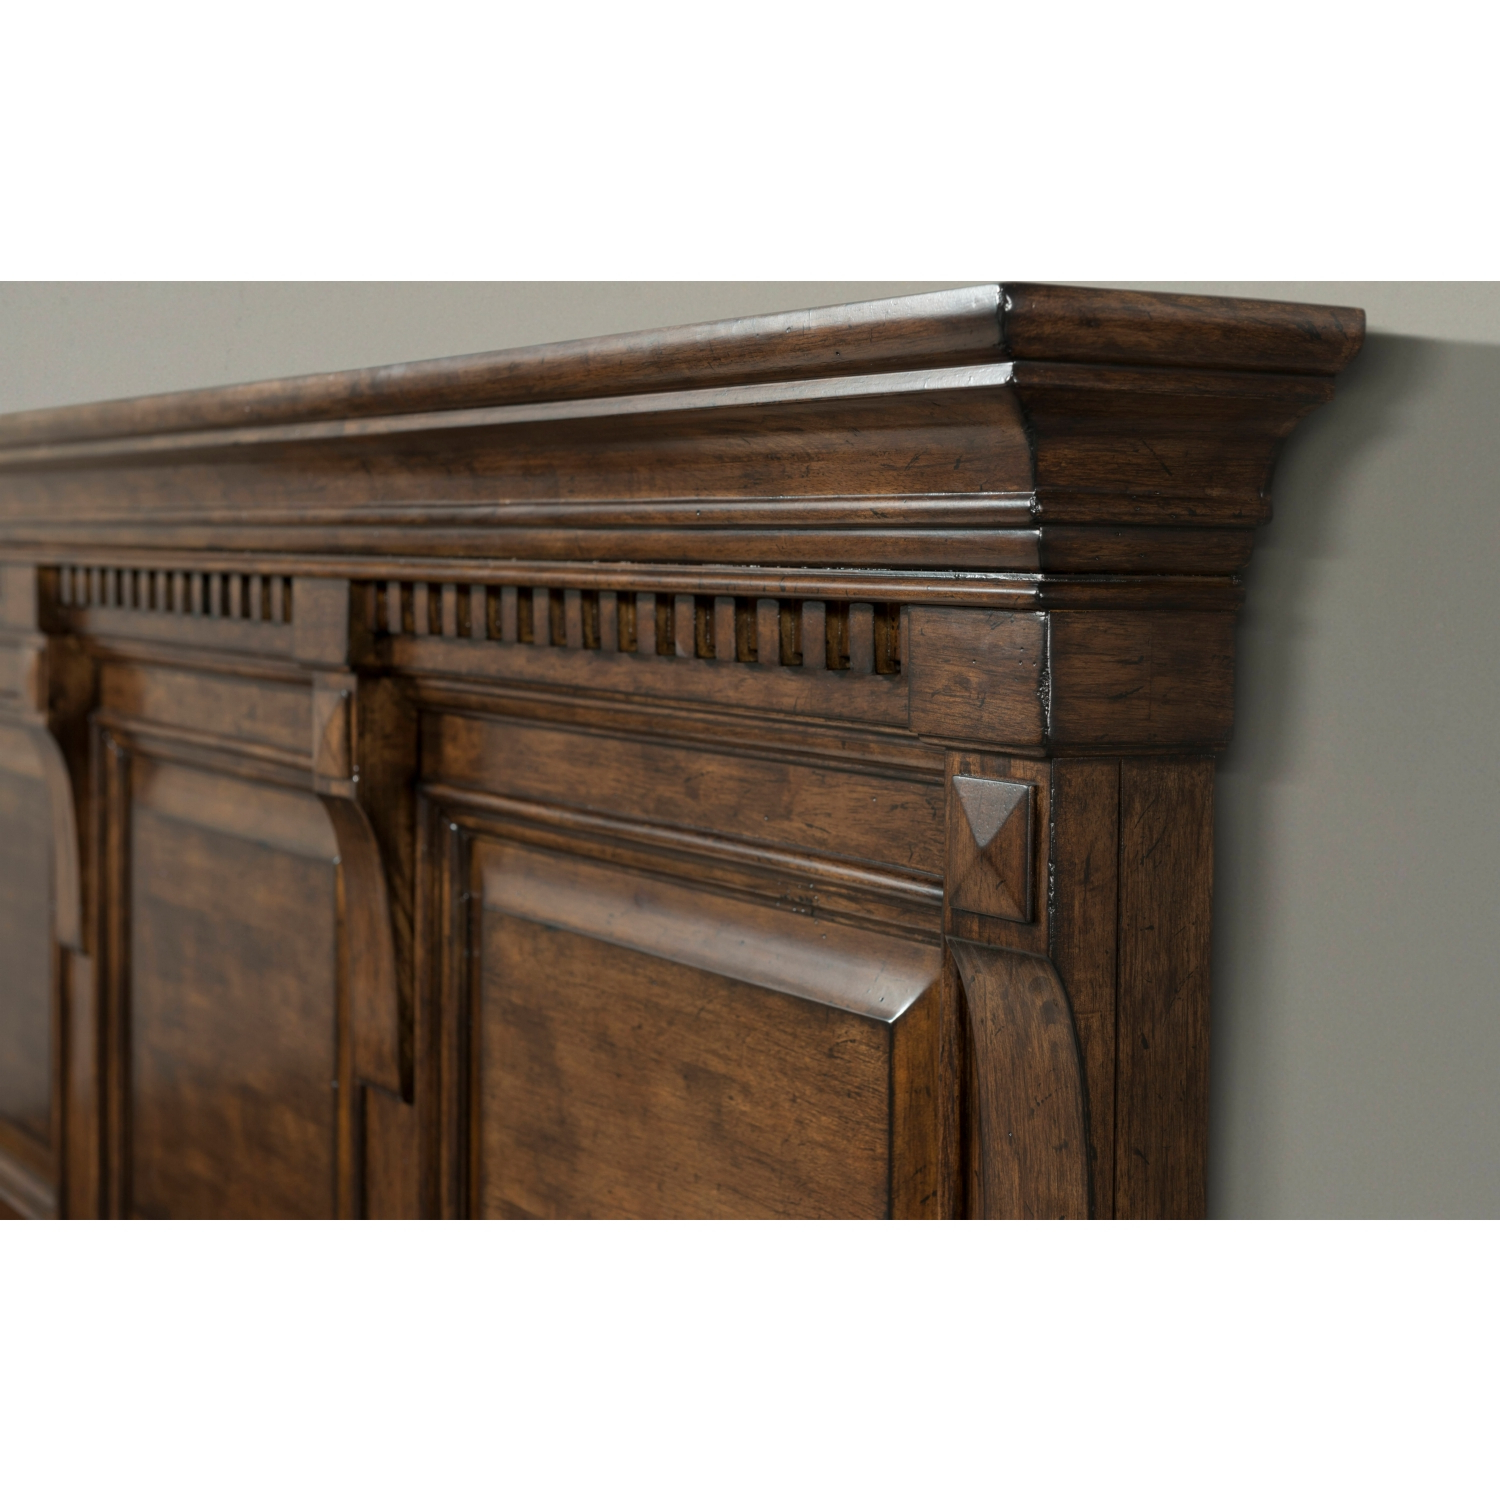 Walnut Finish Crown Moulding Sideboards Within Current Picket House Furniture Hx600Qb Henry Queen Bed In Rustic Walnut (View 18 of 20)